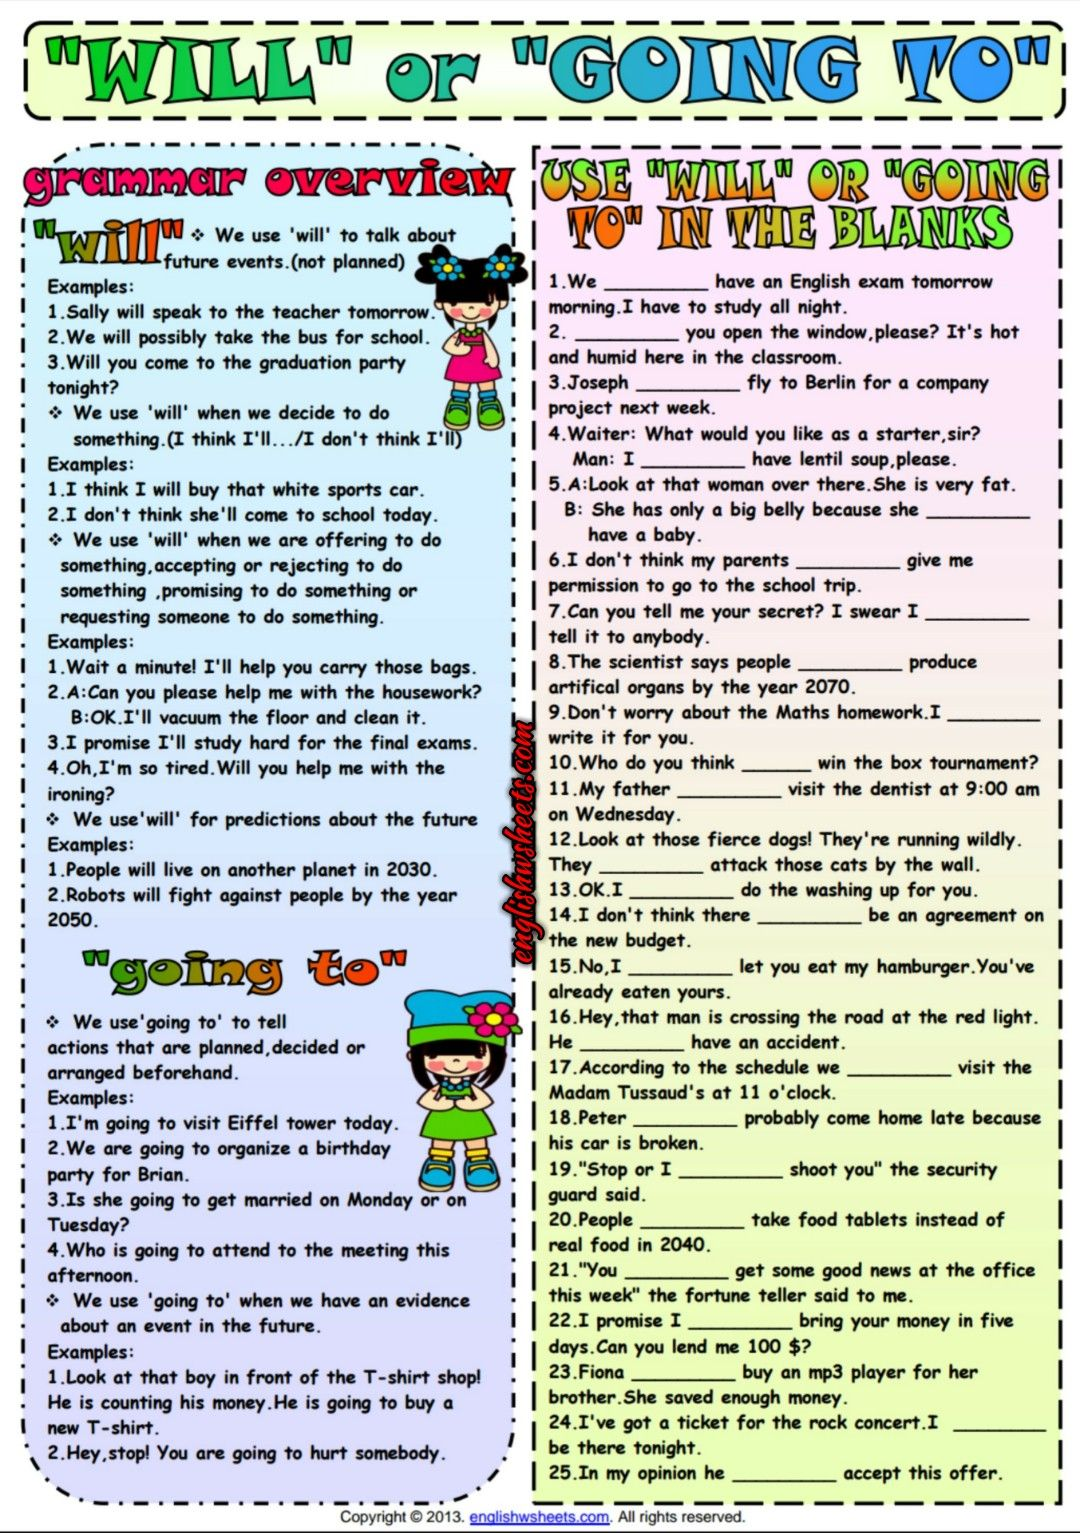 Will Or Going To ESL Grammar Exercise Worksheet | Esl Printable ...